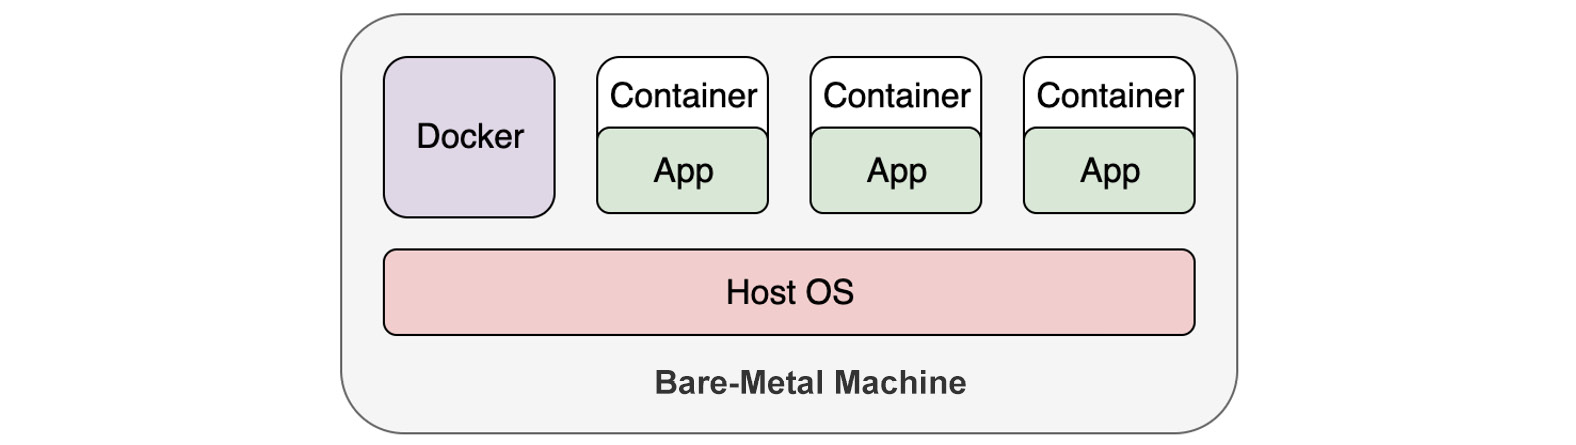 Figure 1.2: Running applications in containers